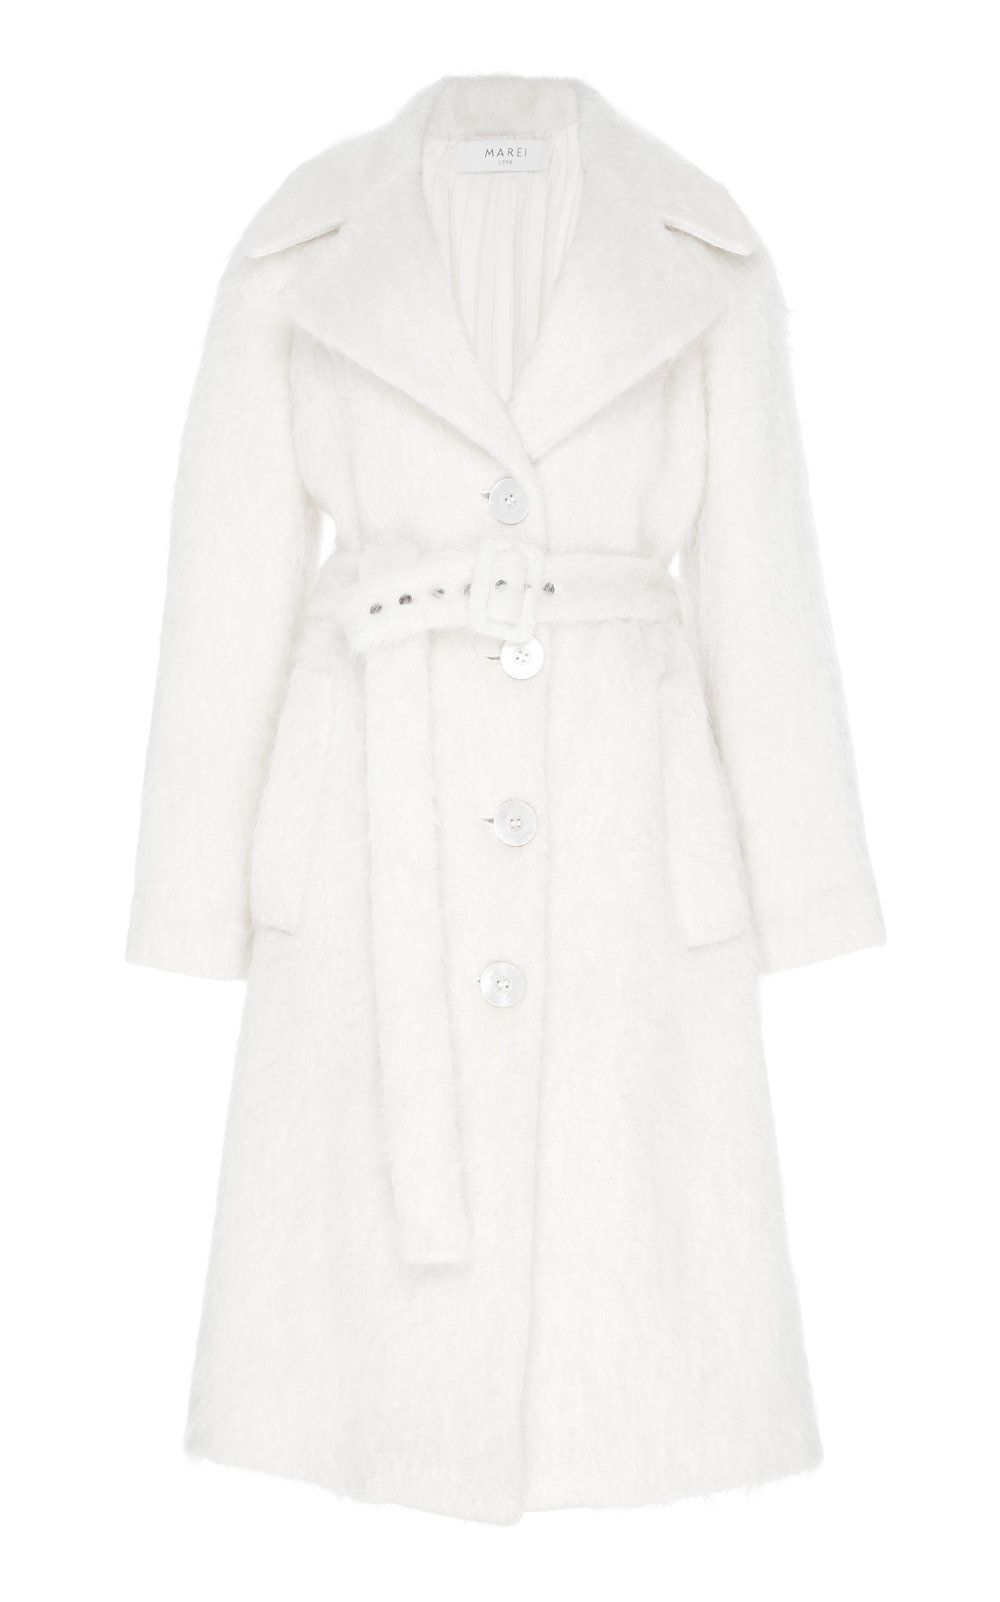 Ursinia Coat - IVORY  Sharply cut in a slight A-lined shape, this coat is incredibly elegant. Made from a unique Wool blend, it features a fluffy texture and wide notched lapels. Matching belt defines the waistline, while creating a highly flattering silhouette.